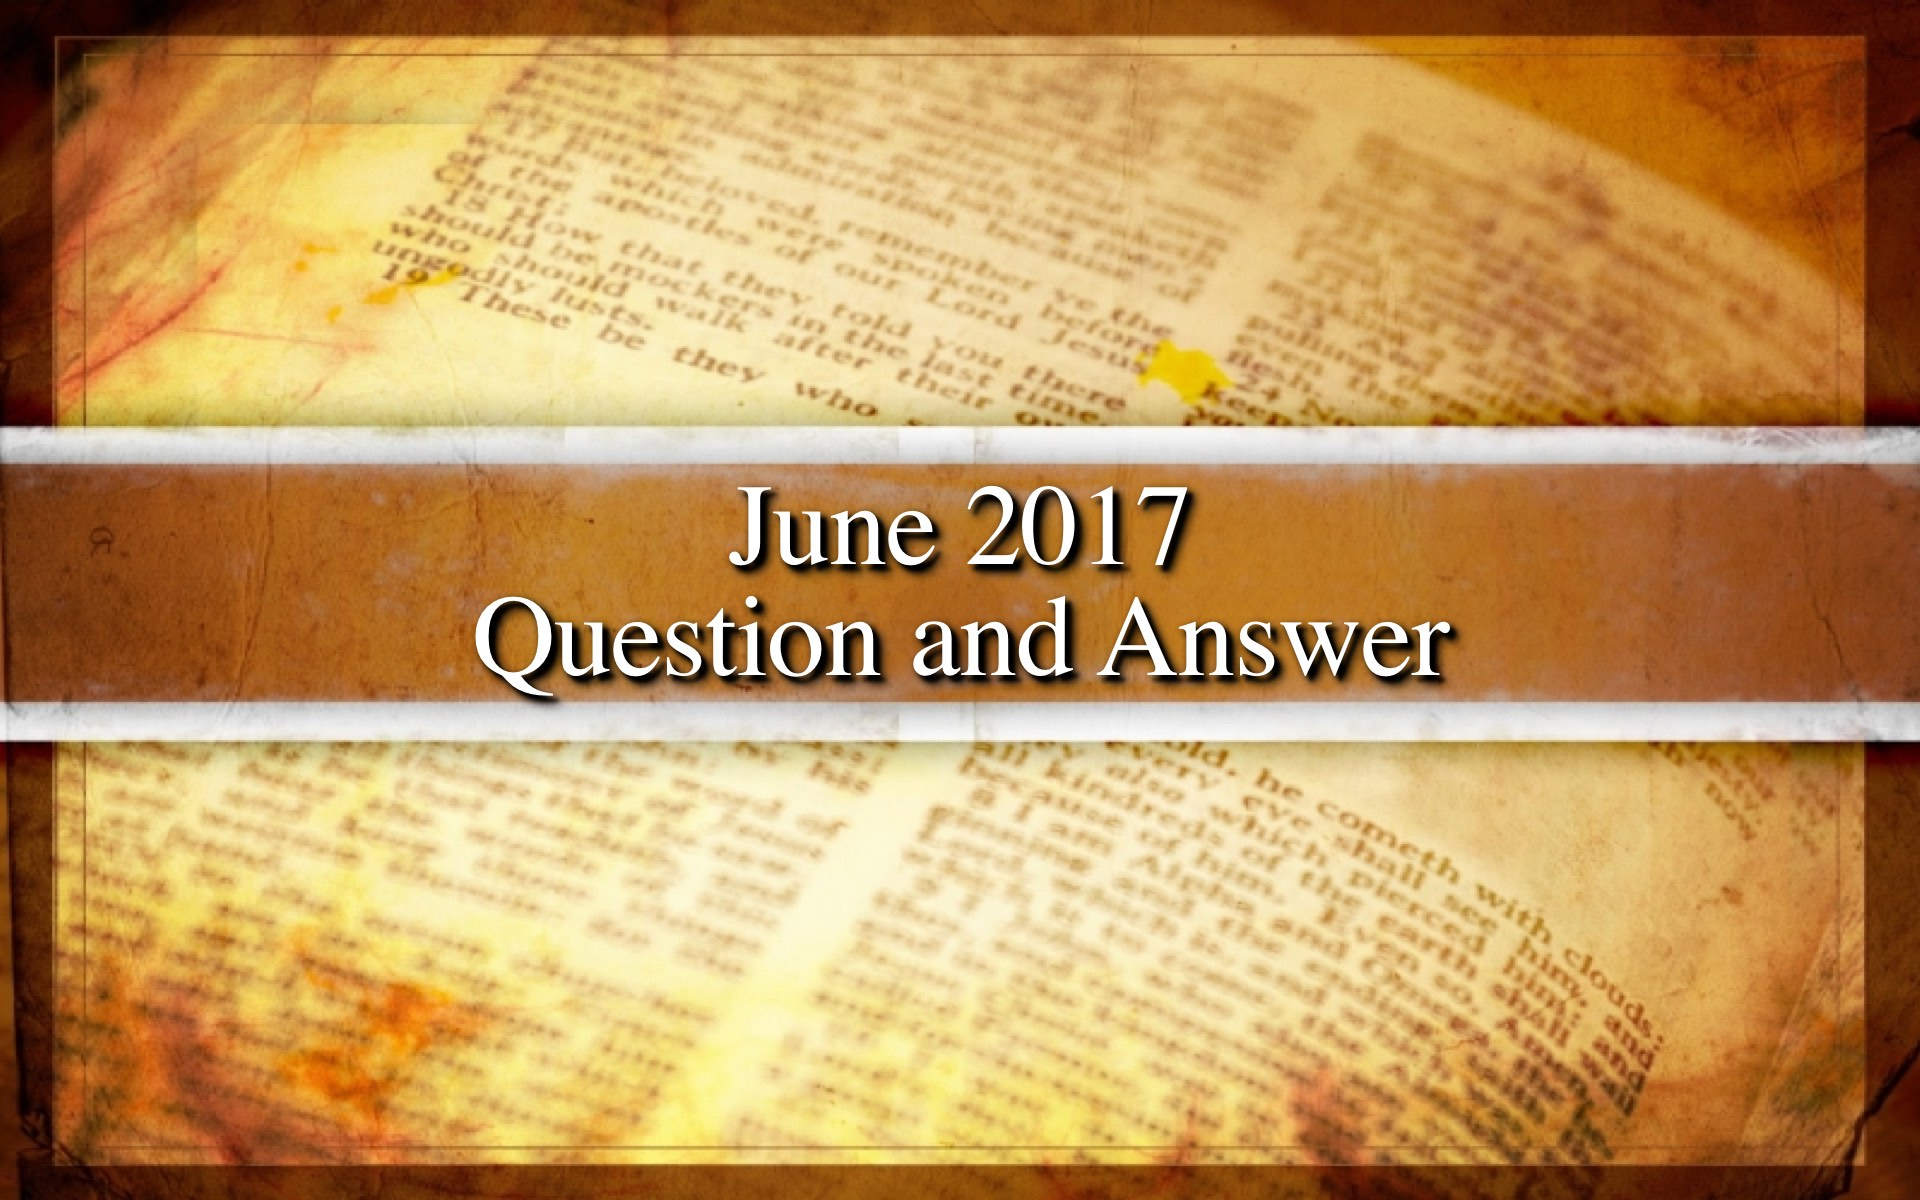 June 2017 Question and Answer